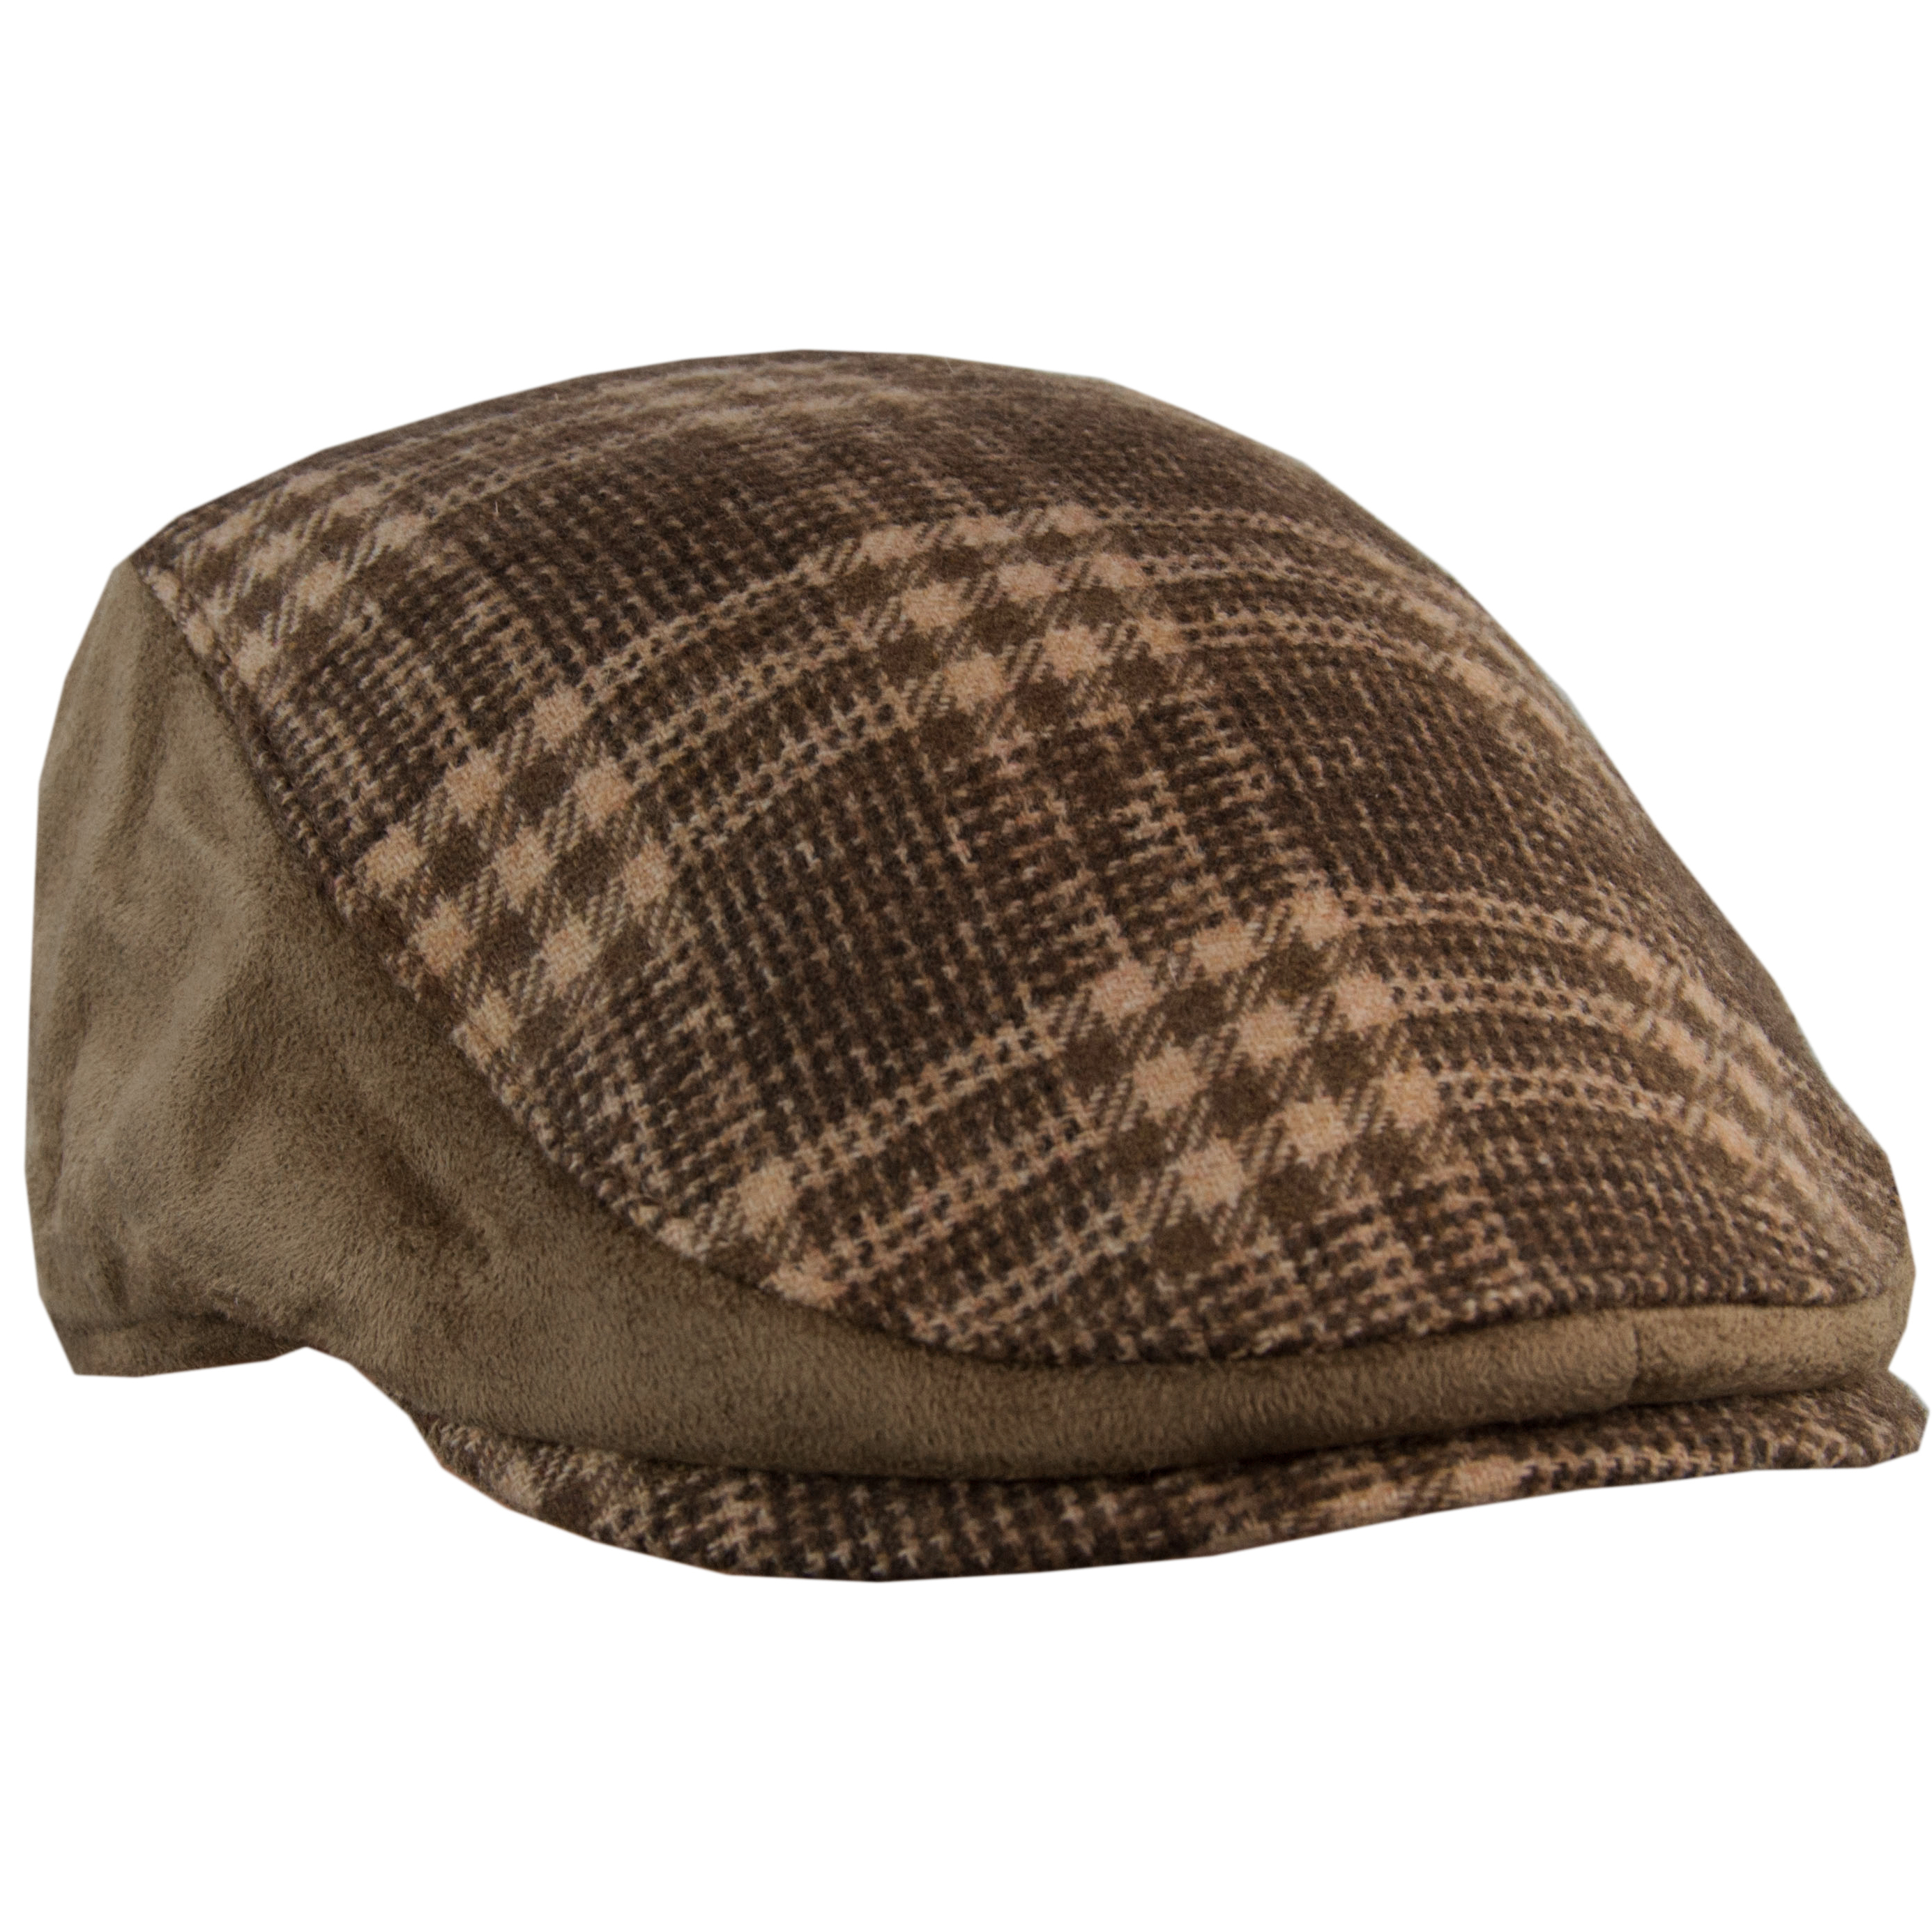 Hat Customization Guide - Wholesale Products From Turkey